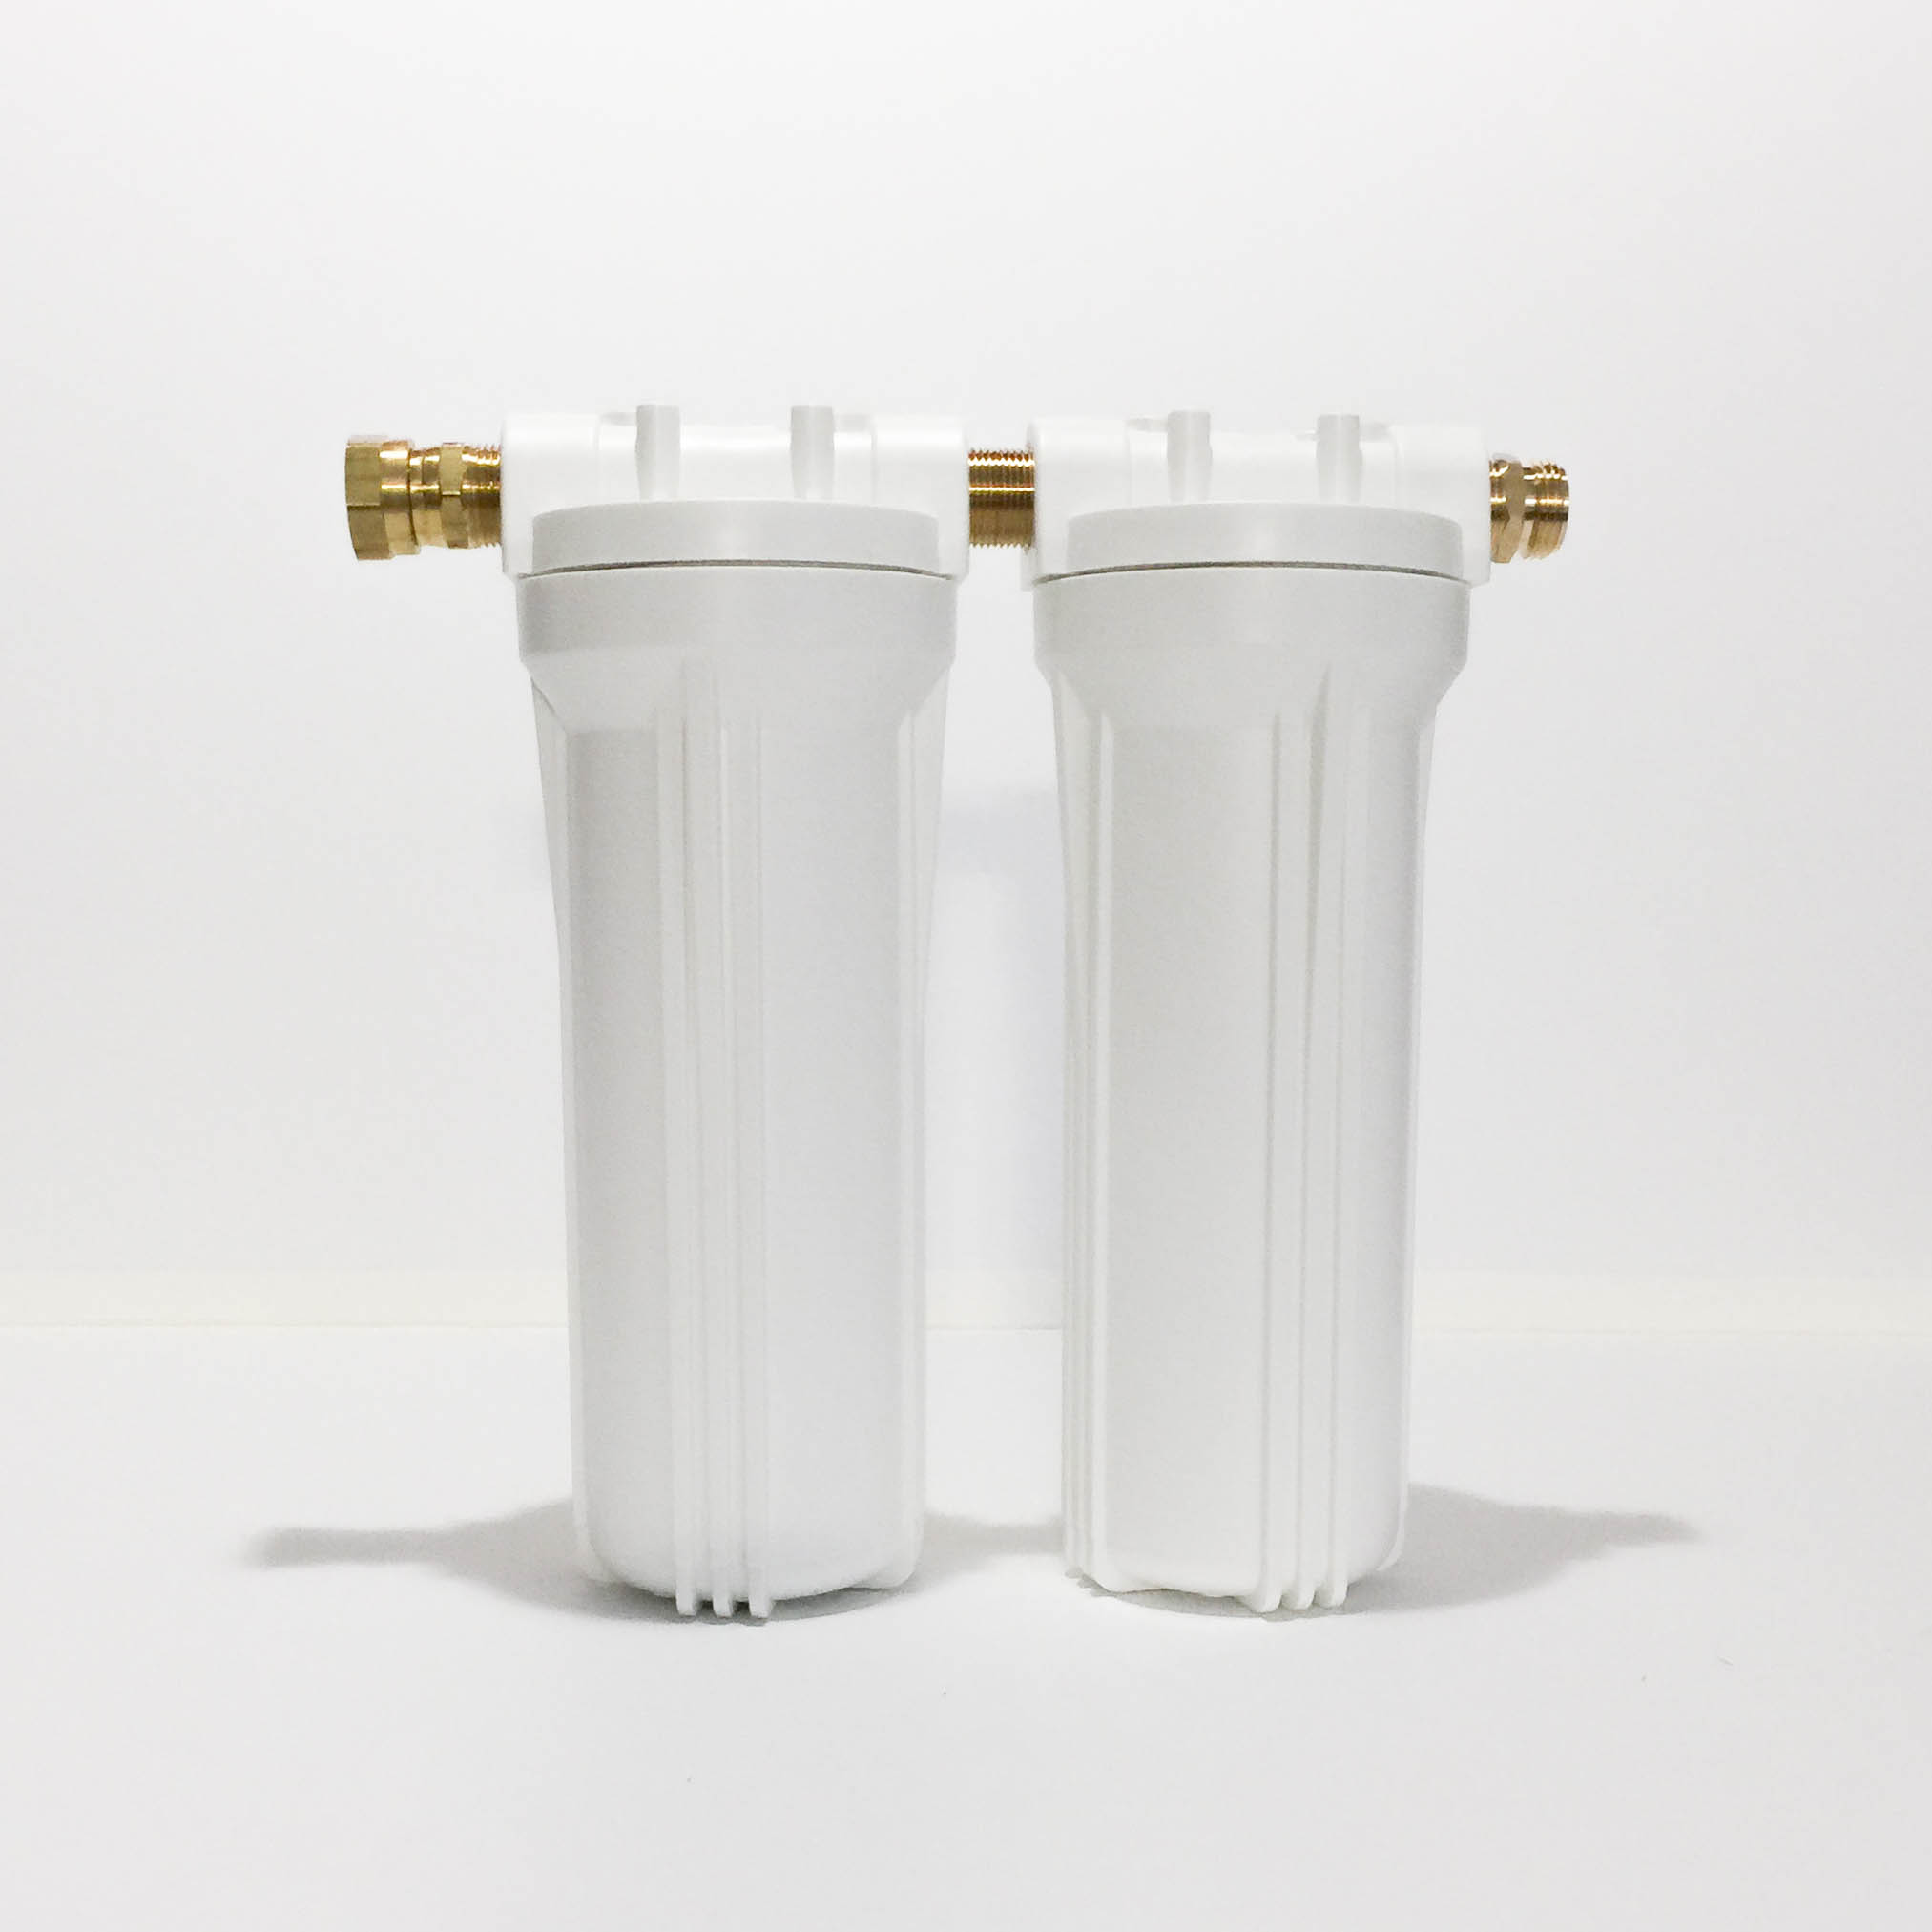 best plus rsz singlebest filtration single undersink filter system water fluoride filters countertop multi